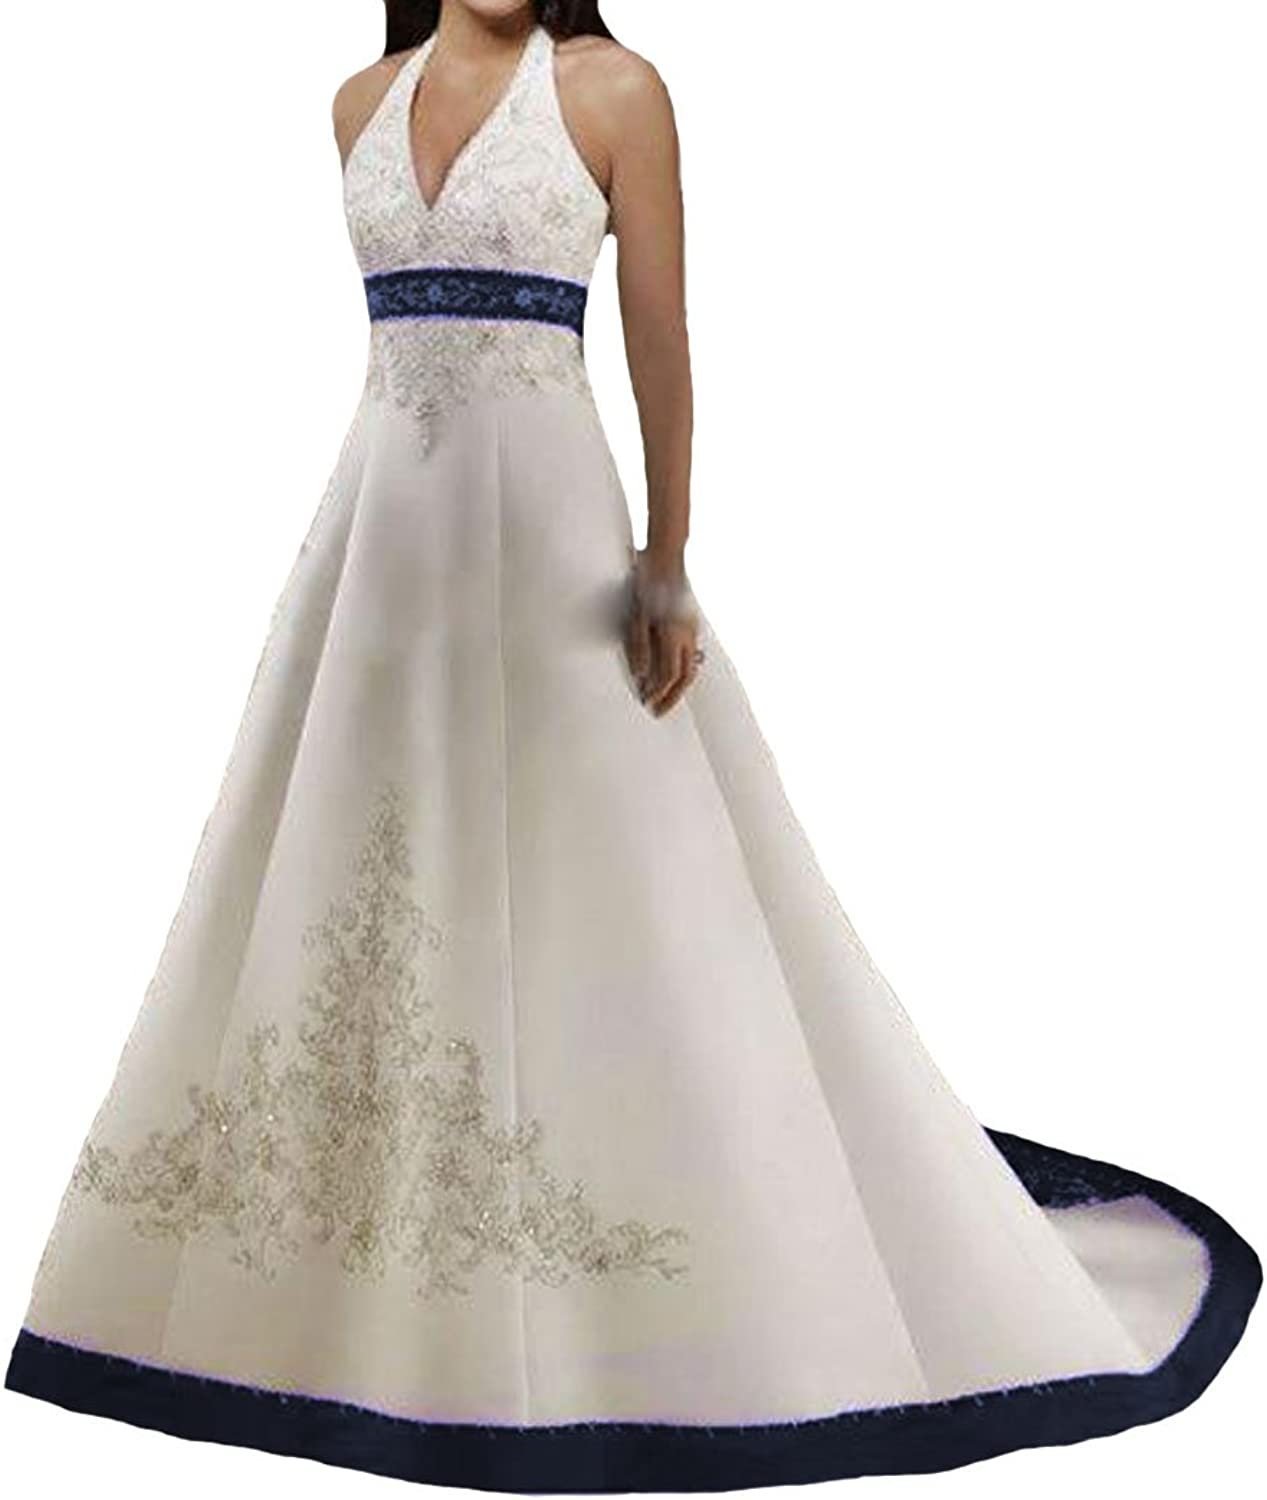 W.W Halter Handmade Embroidery Satin Vintage colord Wedding Dresses Gothic Bridal Gowns